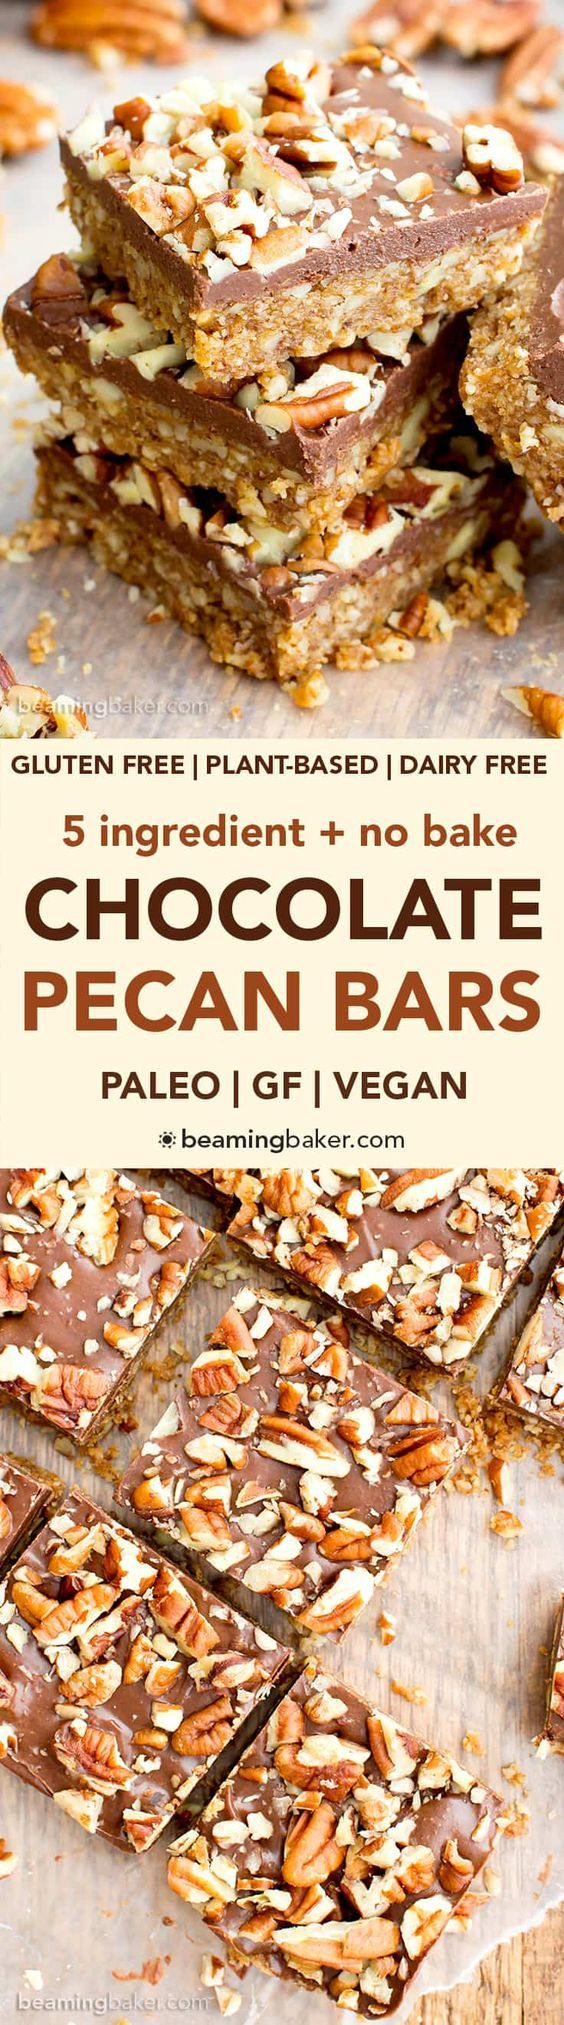 No Bake Paleo Chocolate Pecan Bars (V, GF, Paleo): a 5-ingredient, no bake recipe for deliciously textured pecan bars topped with a thick layer of chocolate and nuts. #Paleo #Vegan #GlutenFree #DairyFree | BeamingBaker.com